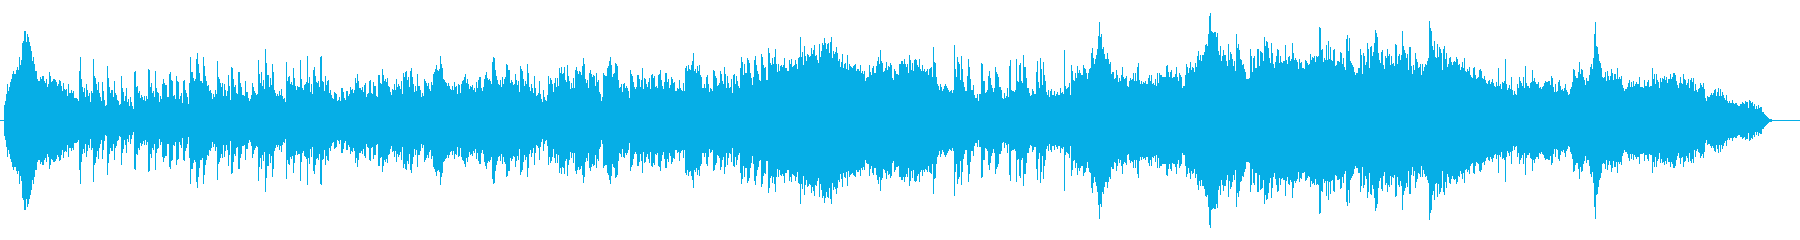 Japanese-style koto (koto) 篳篥 main healing song's reproduced waveform